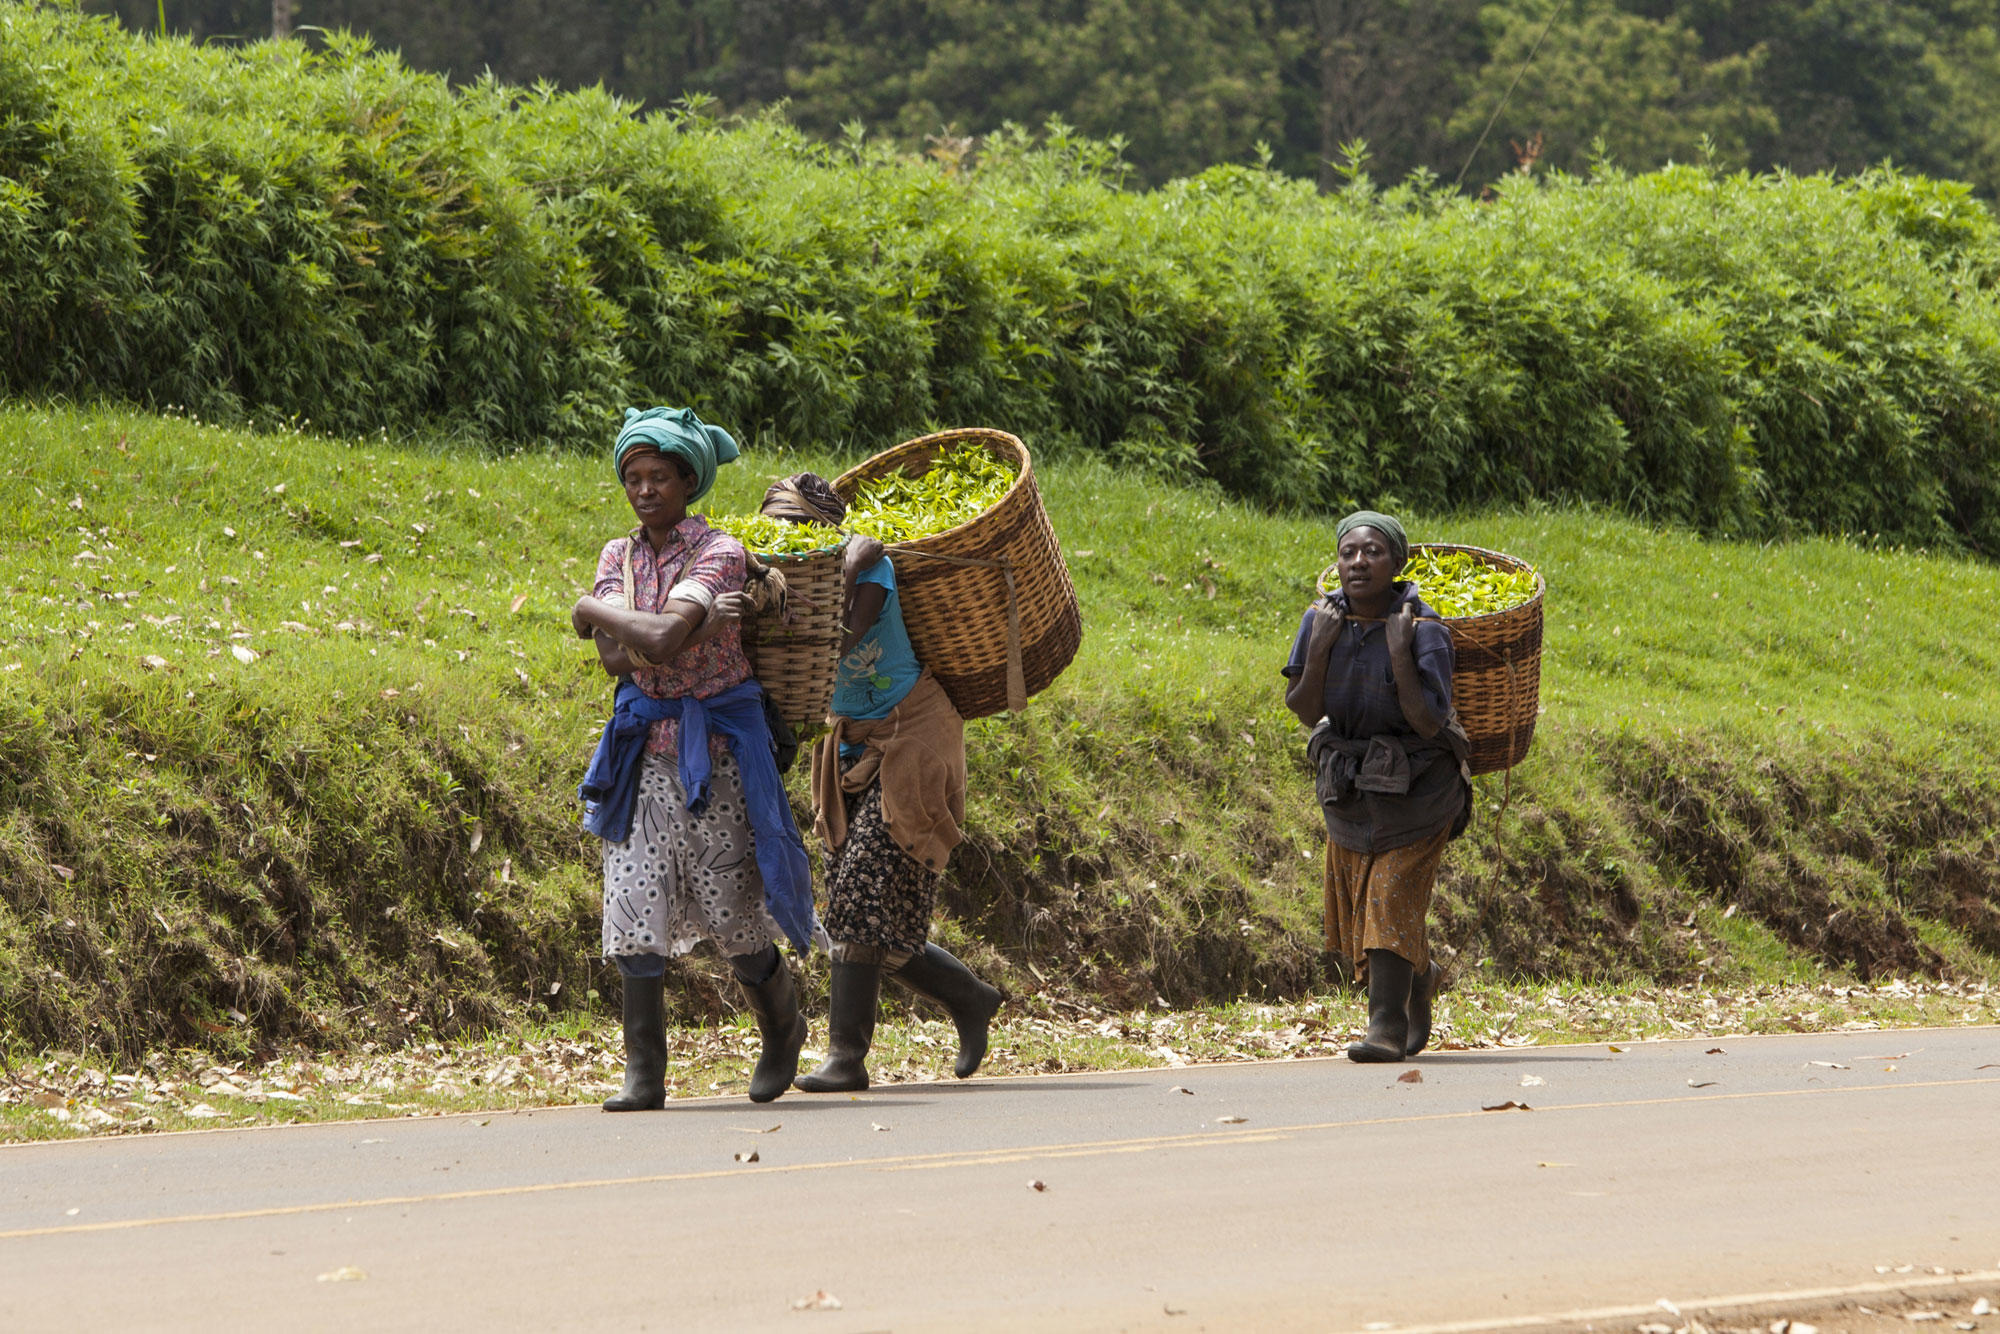 Workers in Kenya